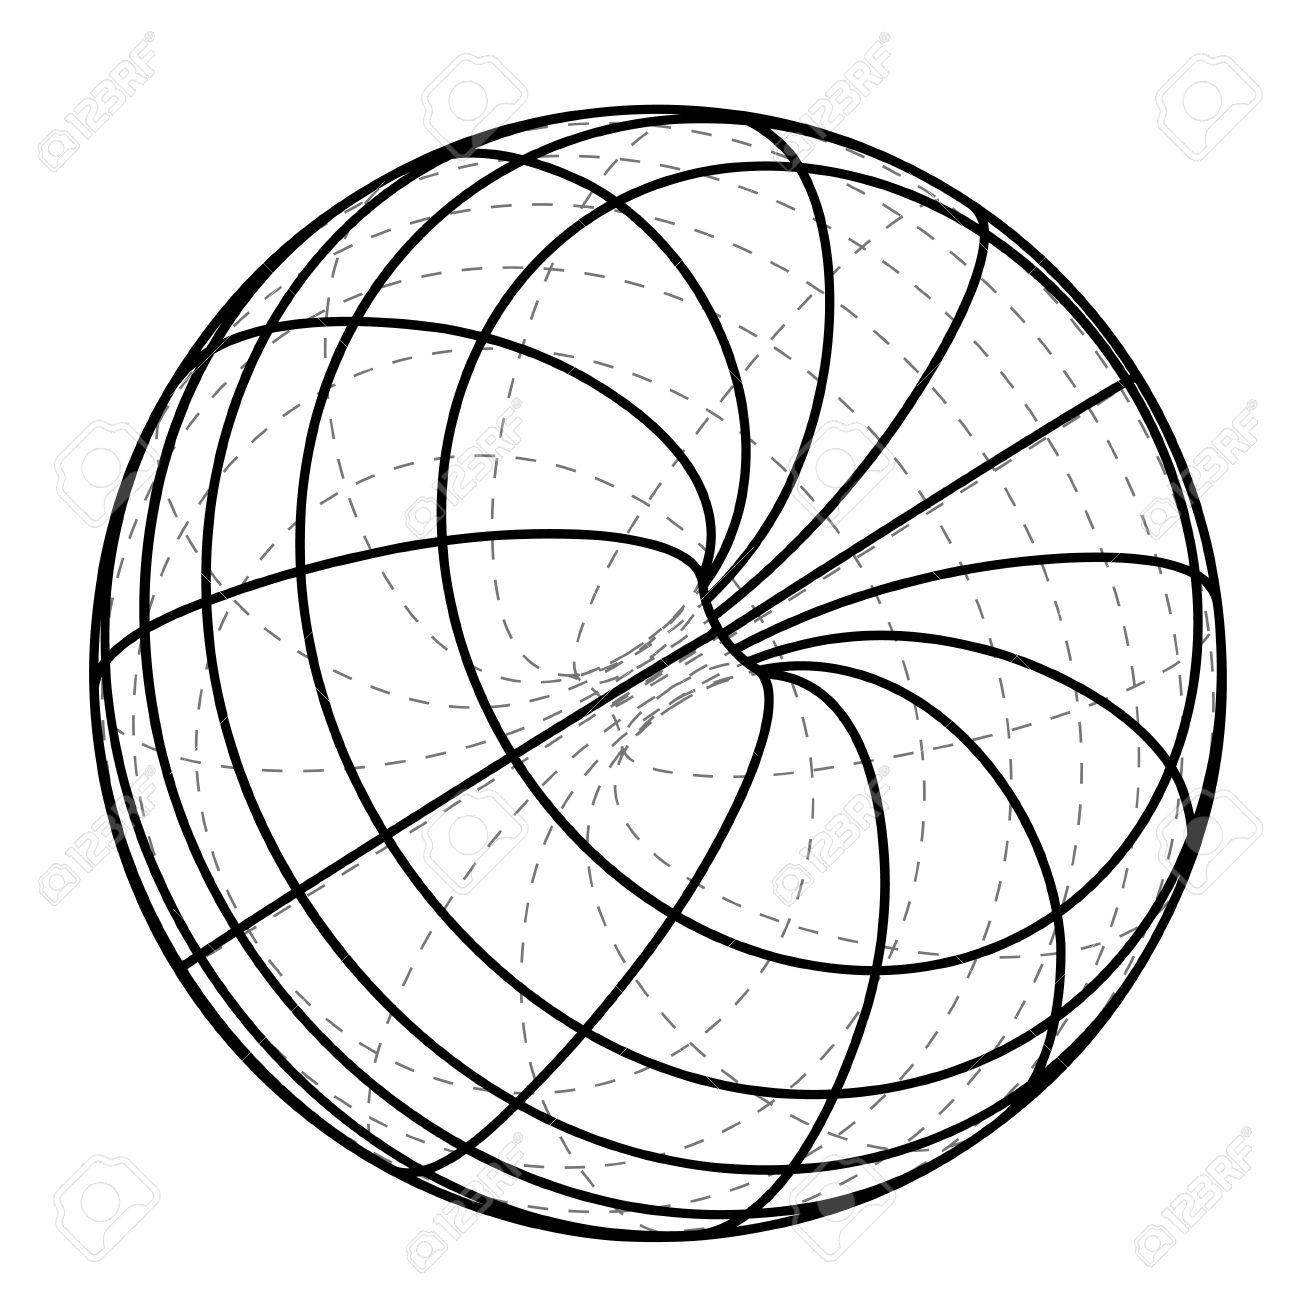 1300x1300 Black Line Scheme Sphere Sketch Illustration Royalty Free Cliparts